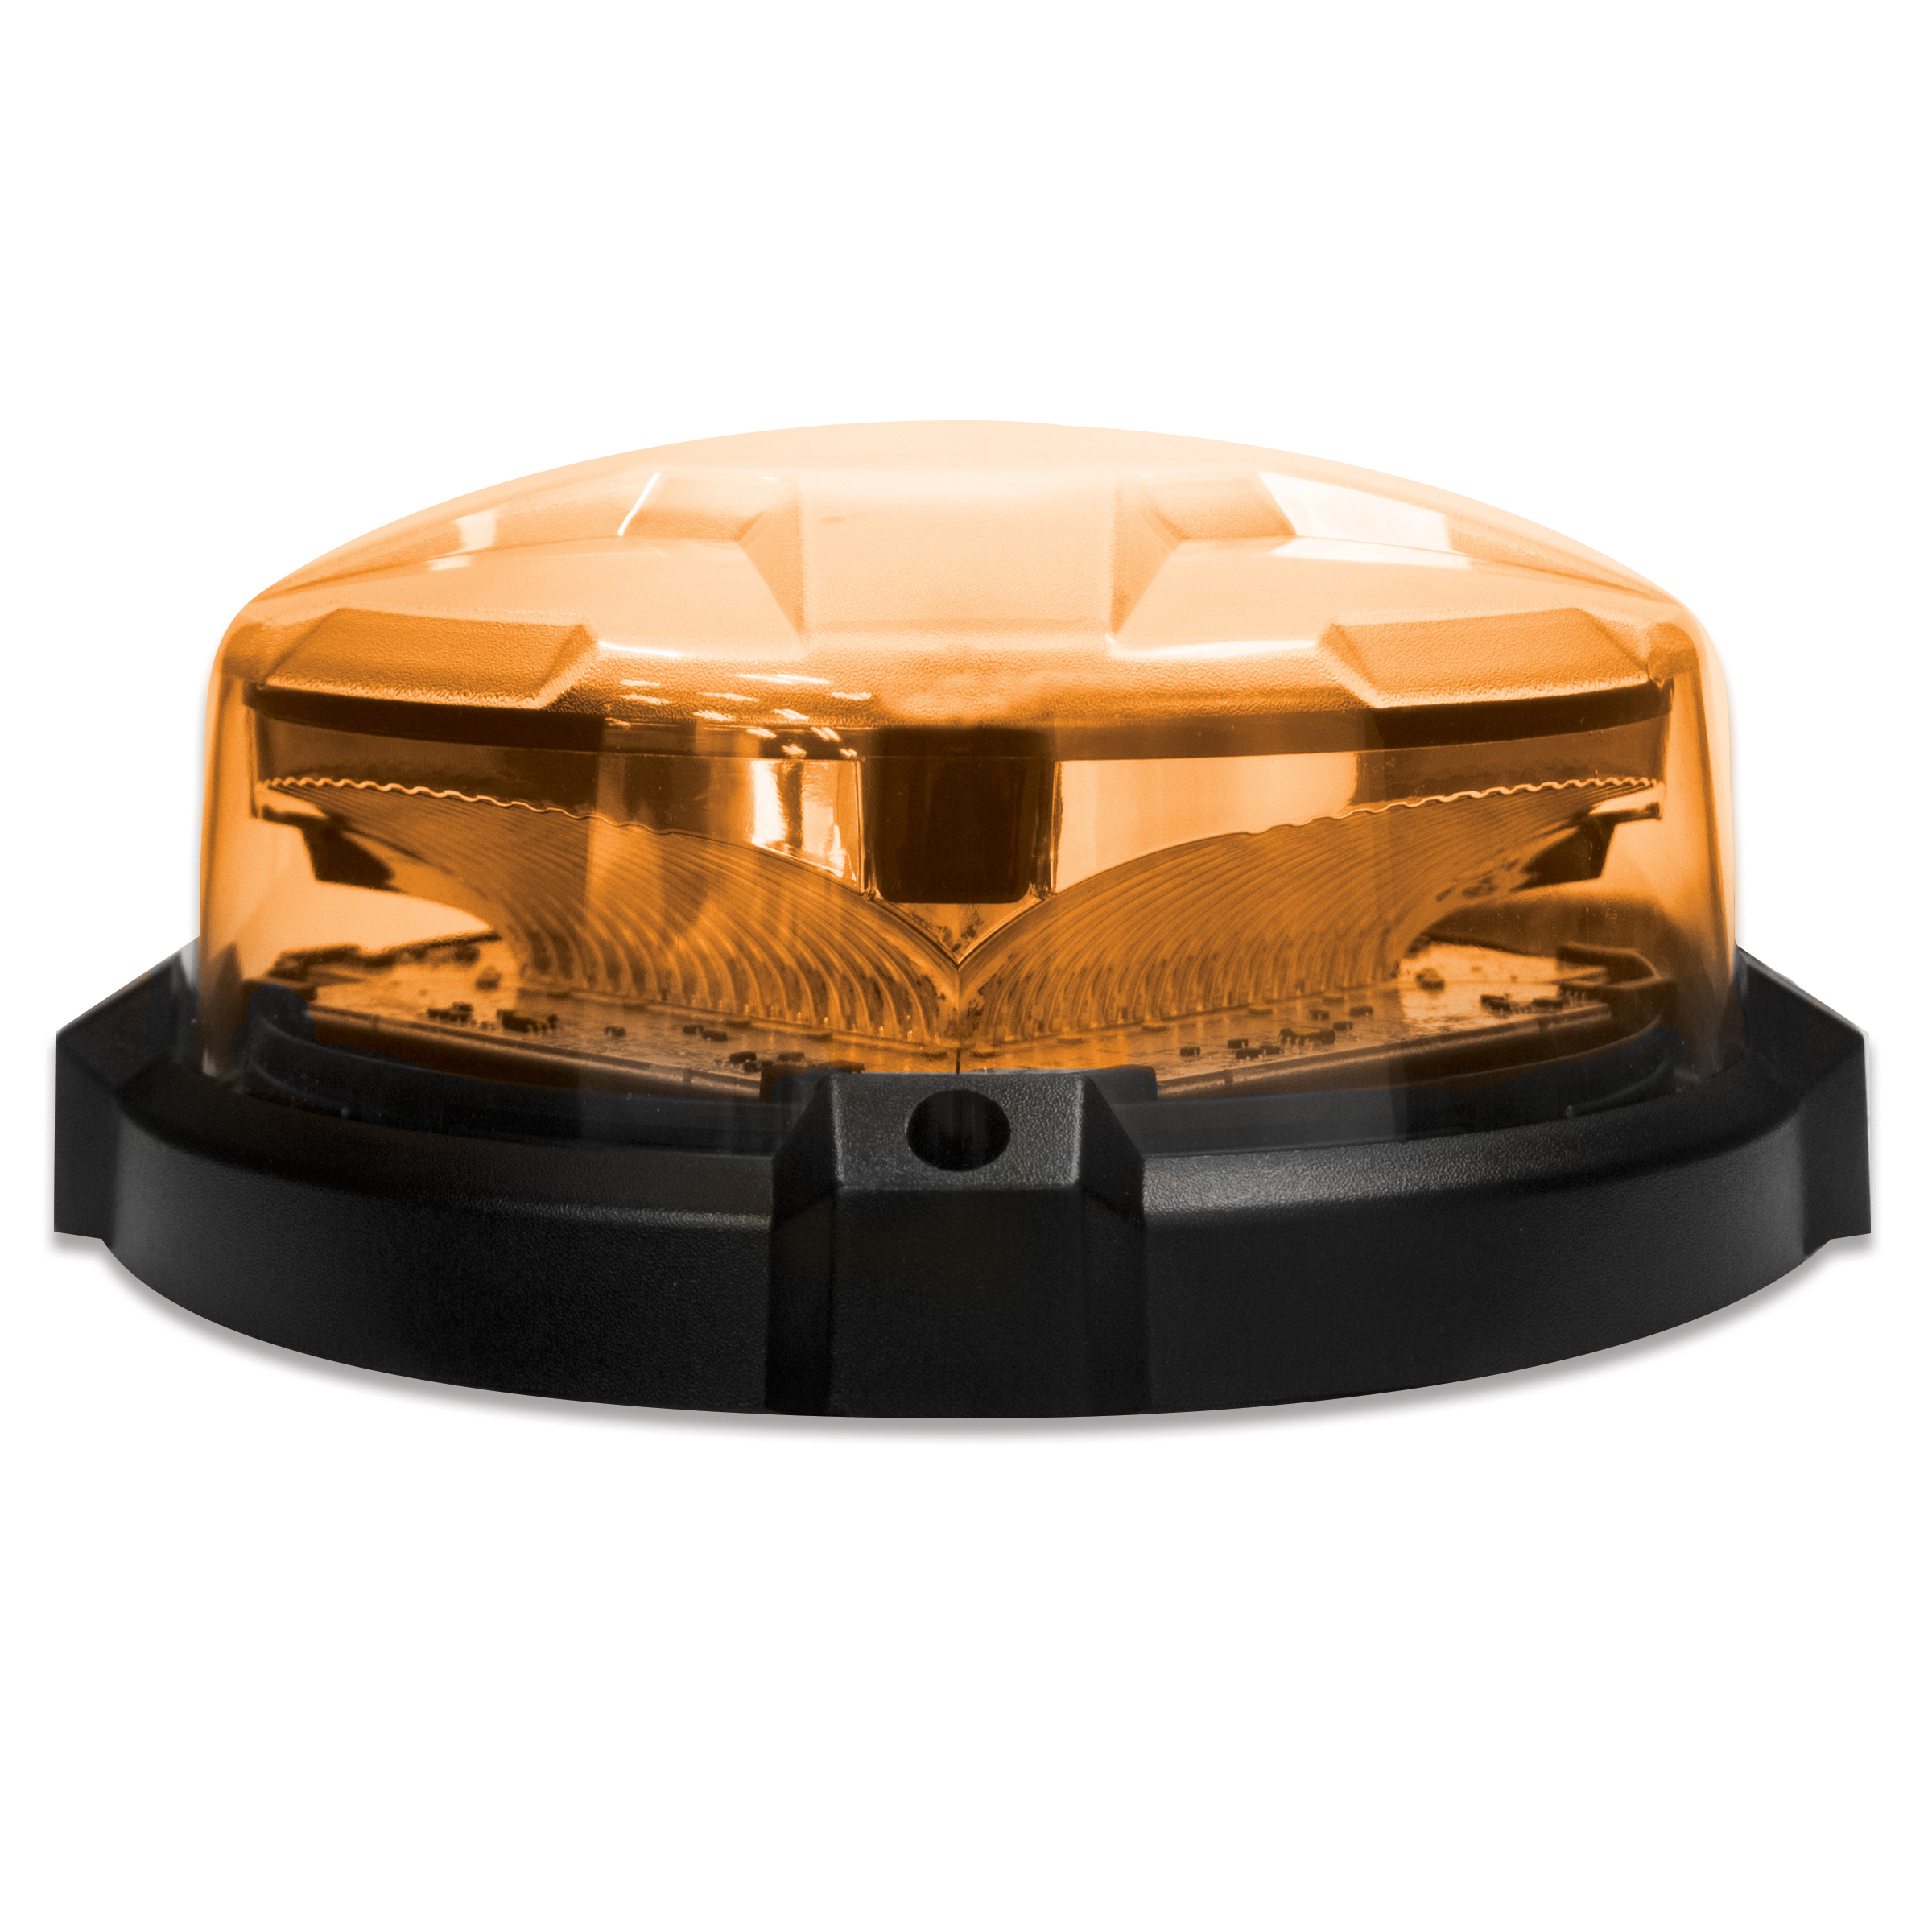 nROADS™ LED Beacon Product Image